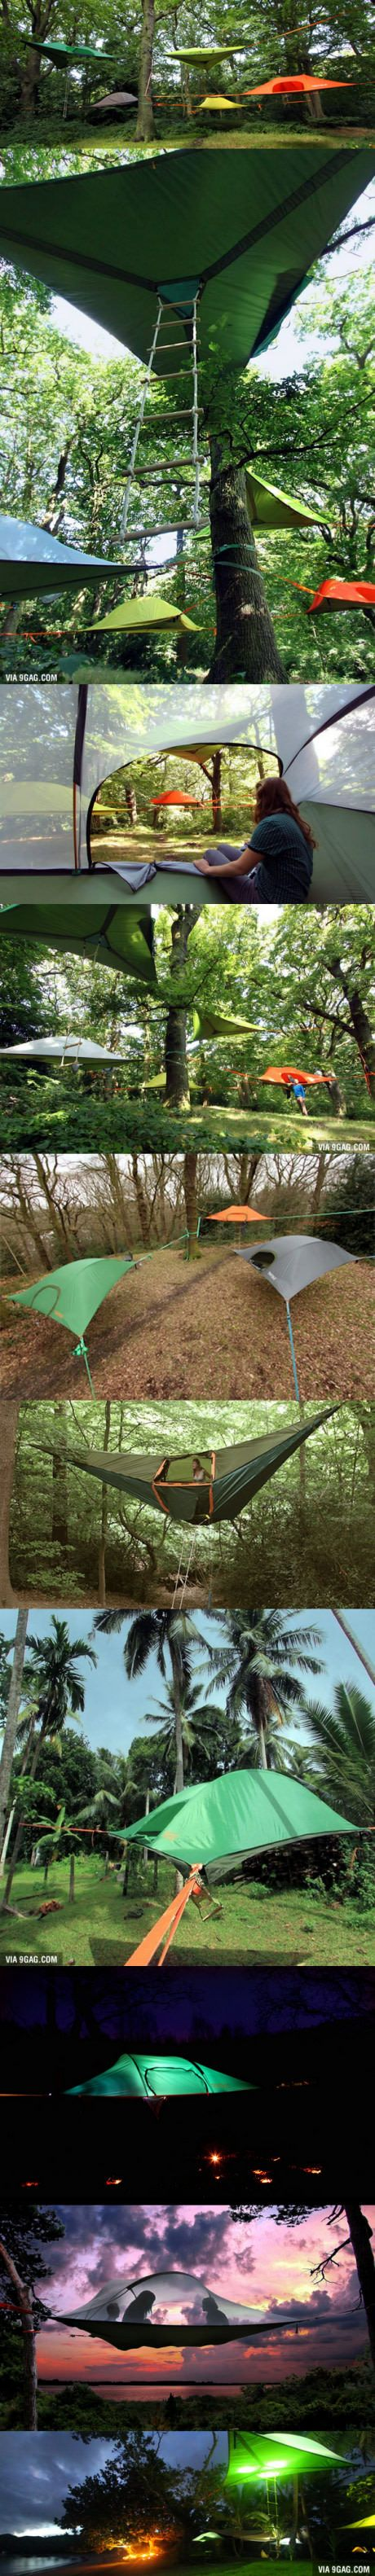 best Summer Camping Trip images on Pinterest Trips Traveling